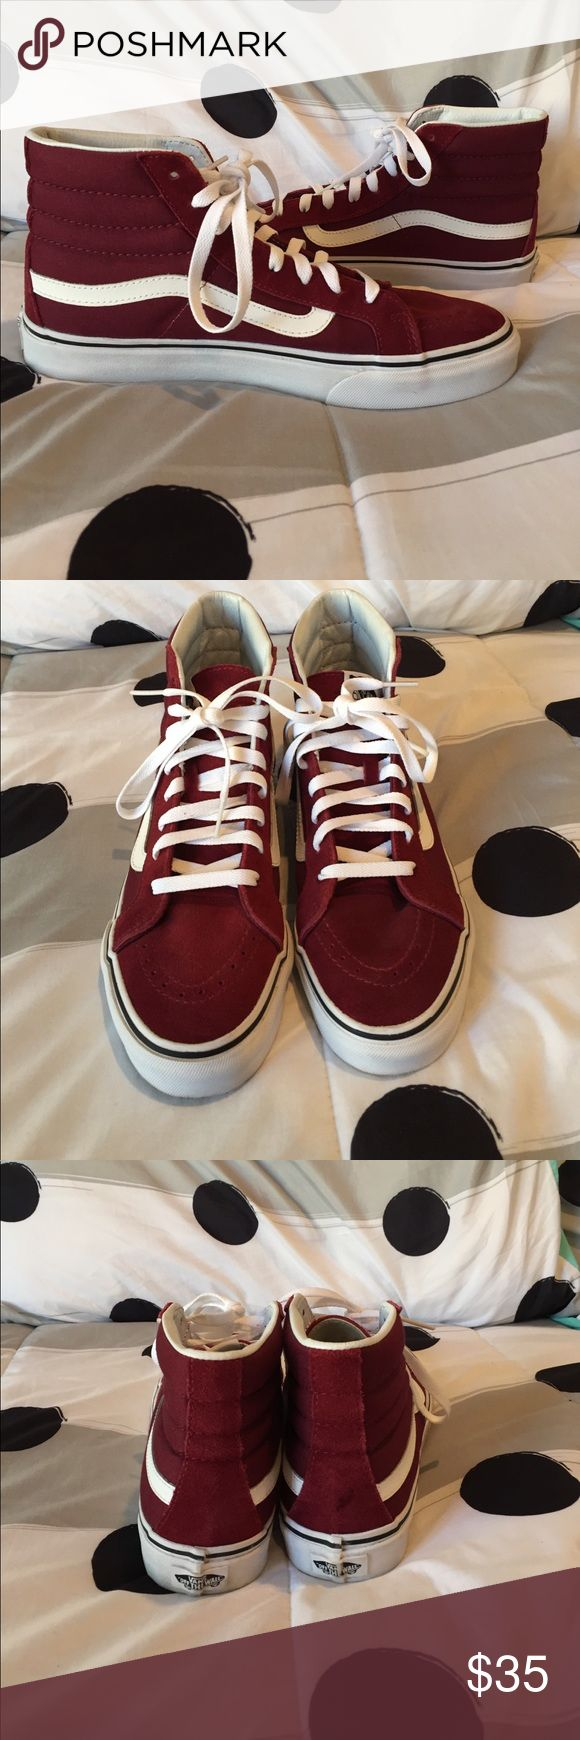 New Maroon hightop vans New maroon and white high top Vans only worn 2 times .  Mens size : 8. Womens size: 9.5 Vans Shoes